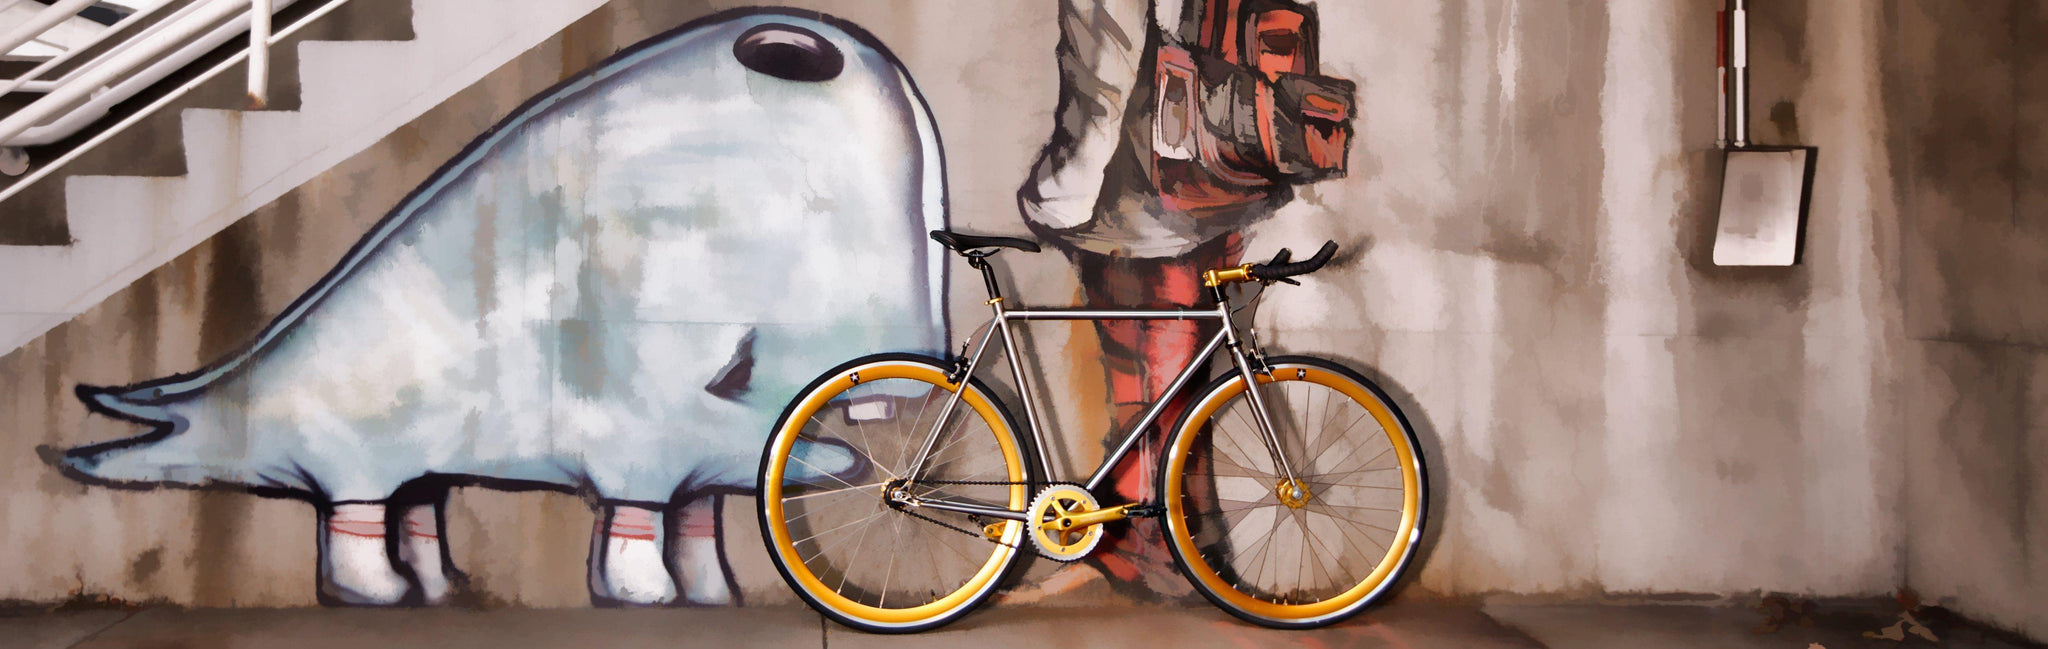 Premium - Streaker Premium - Blackout ™ Big Shot Bikes city commuter Custom Fixed Gear Bicycle black  frame or urban commuting